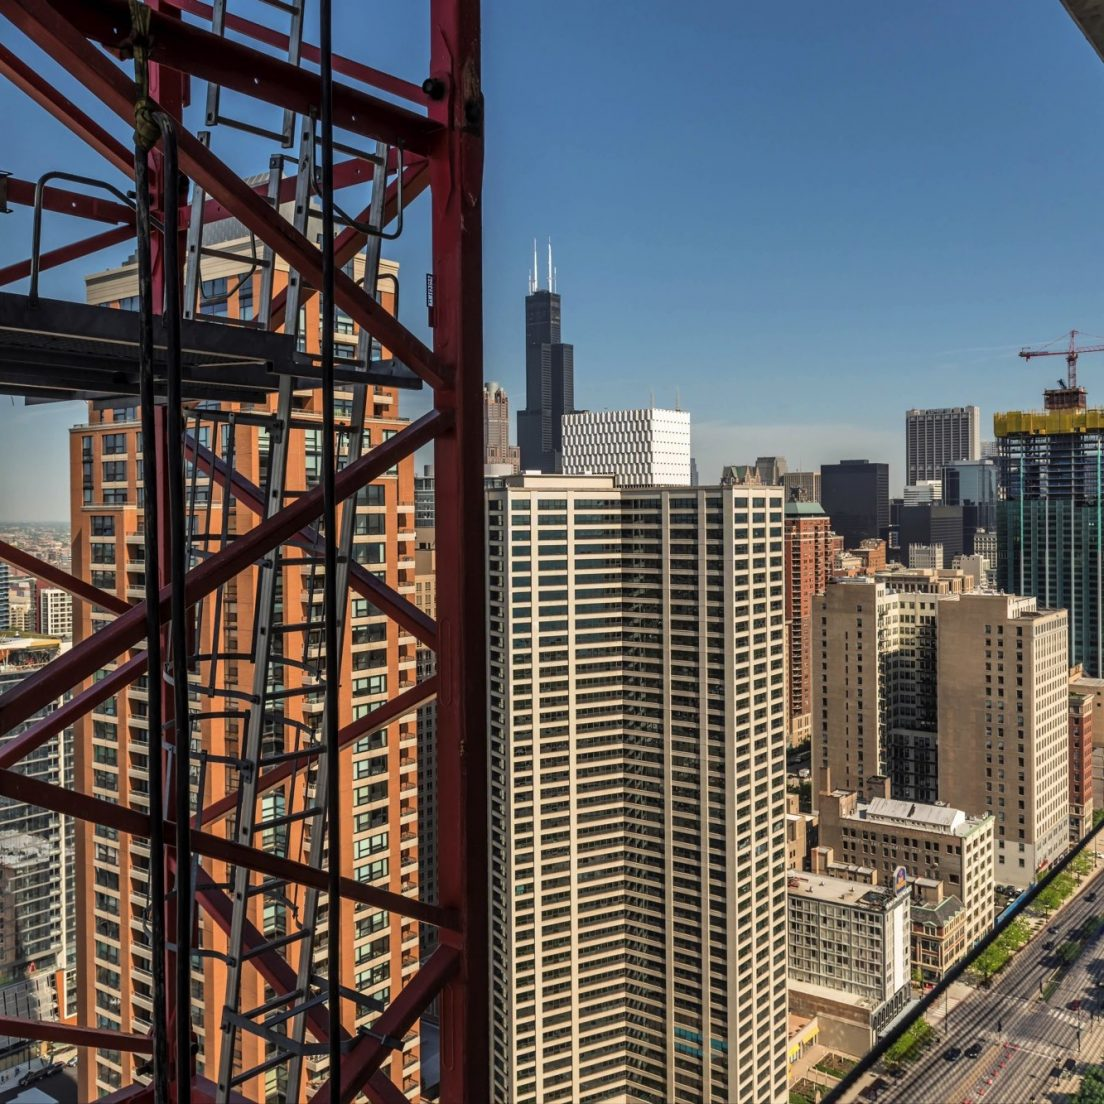 NEMA Chicago under construction (Courtesy of Joe Zekas/YoChicago!)